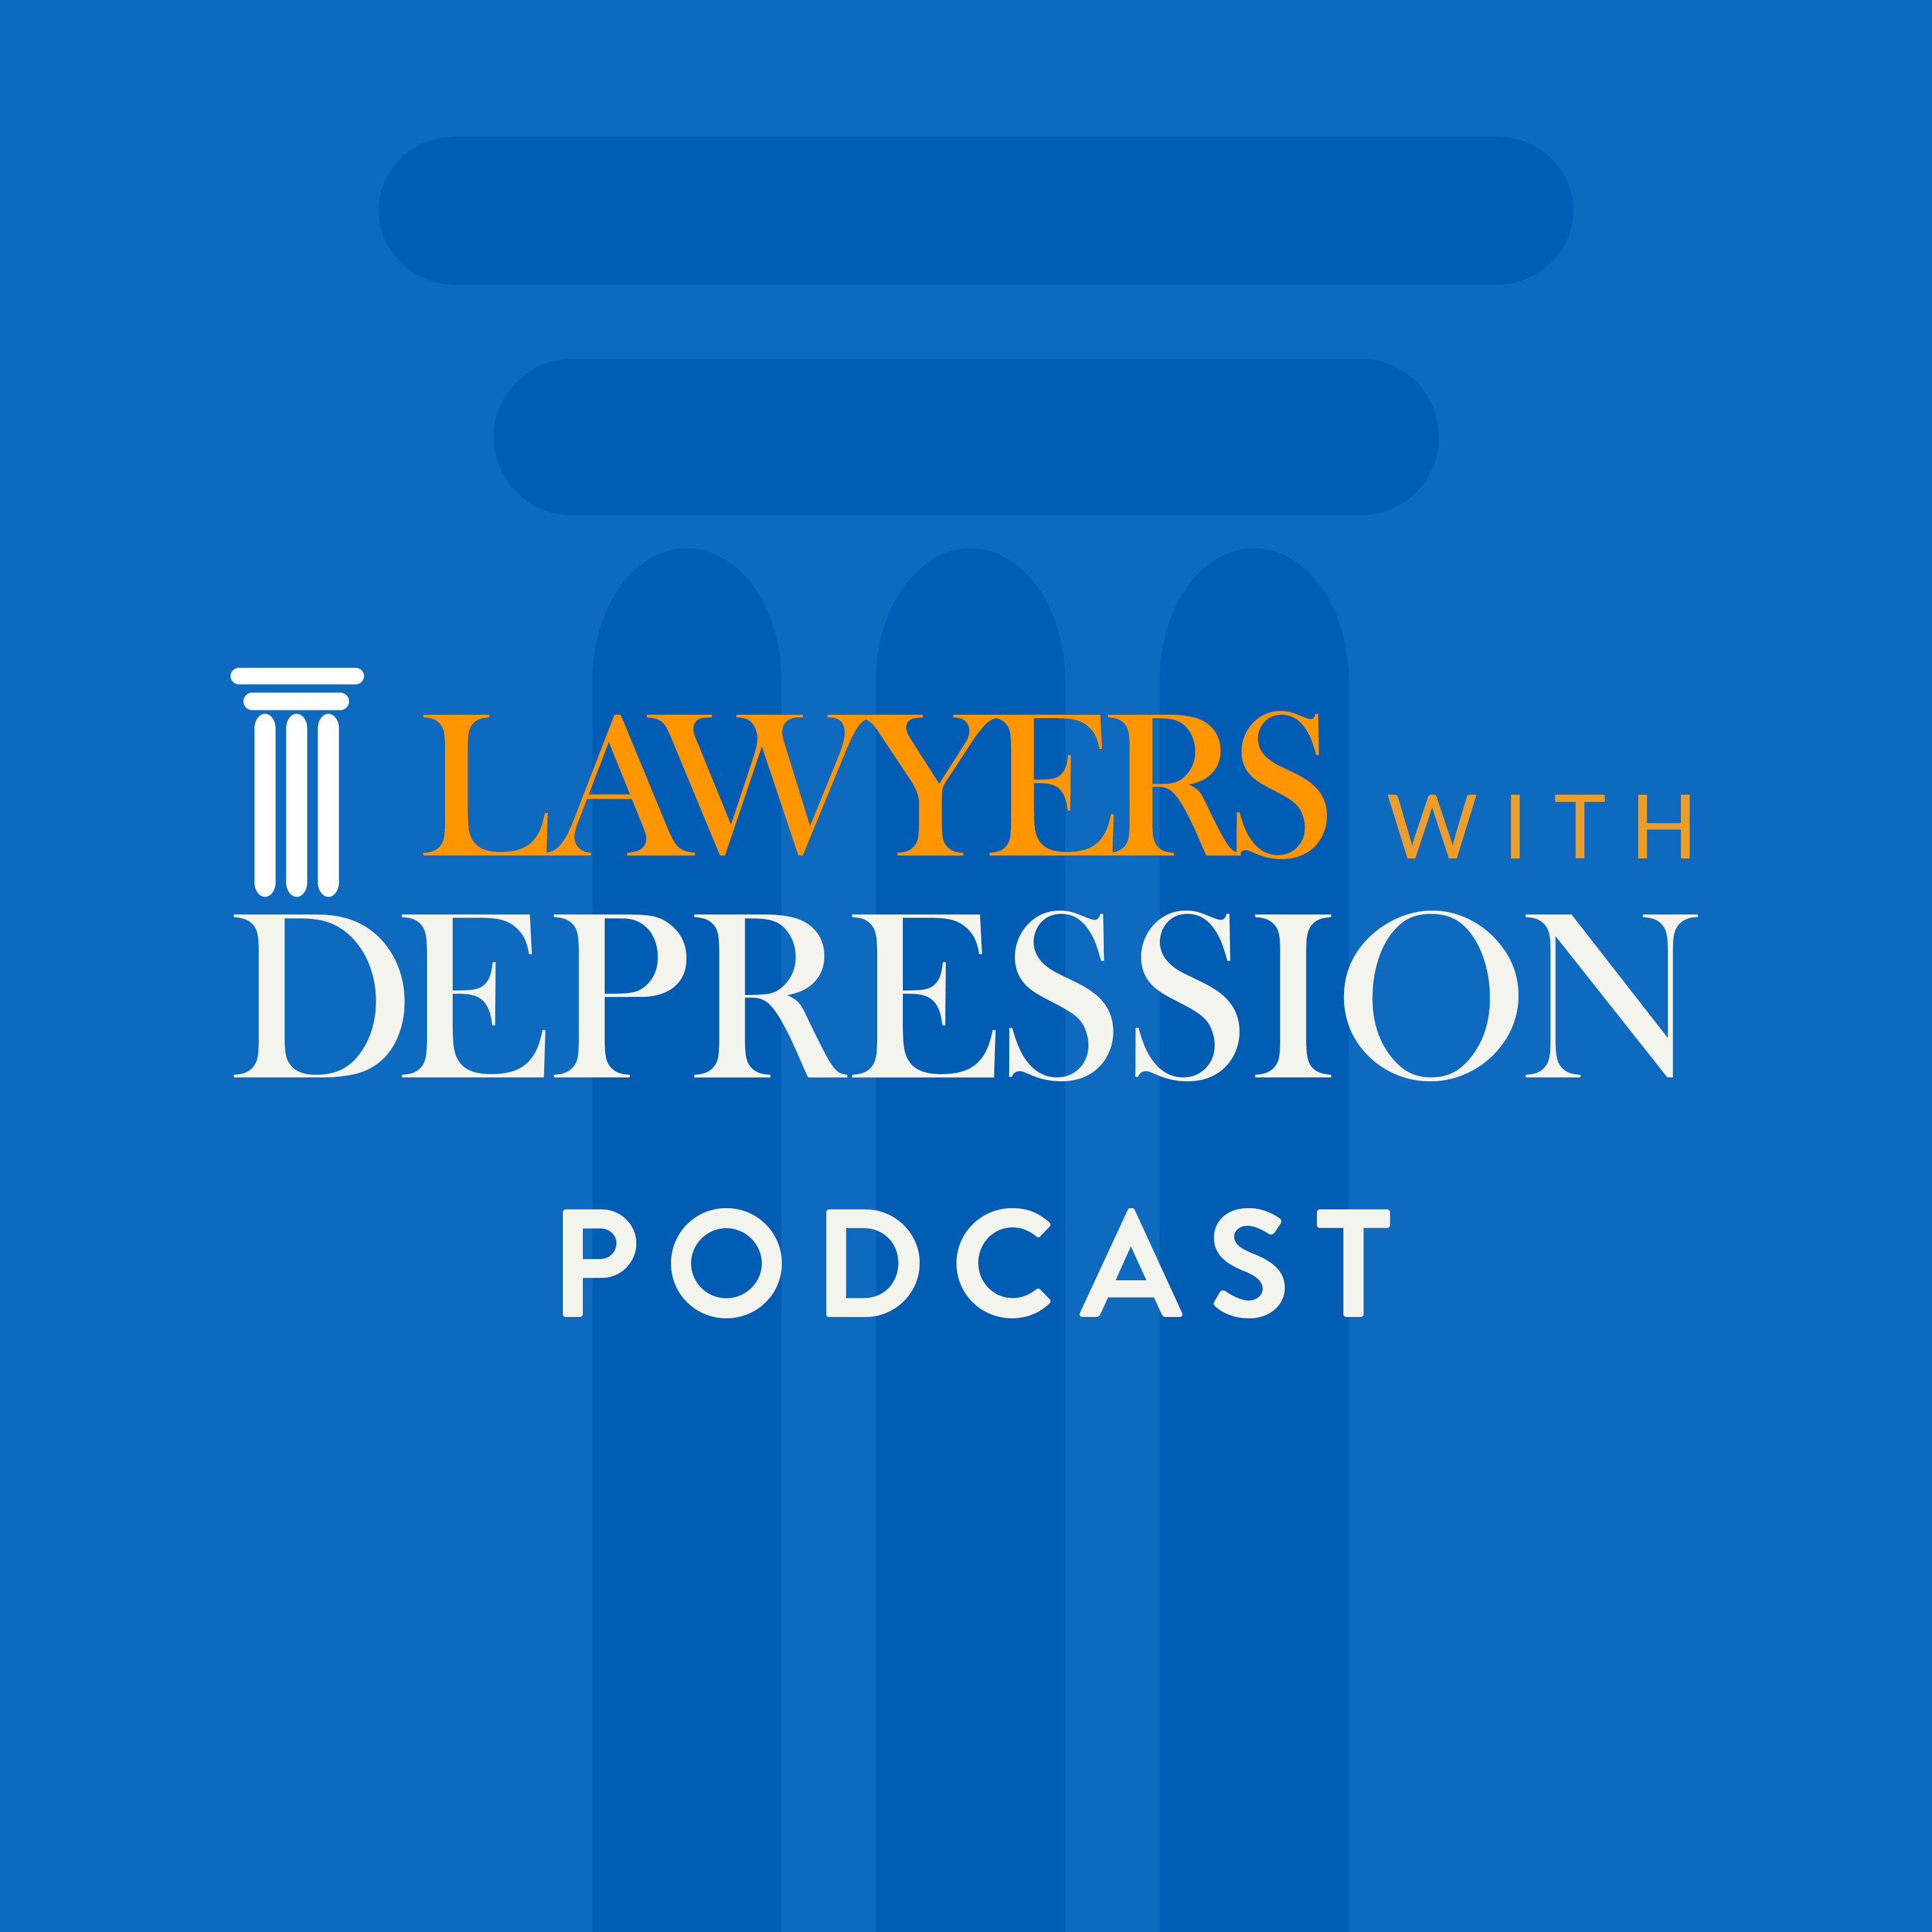 Lawyers with Depression Podcast